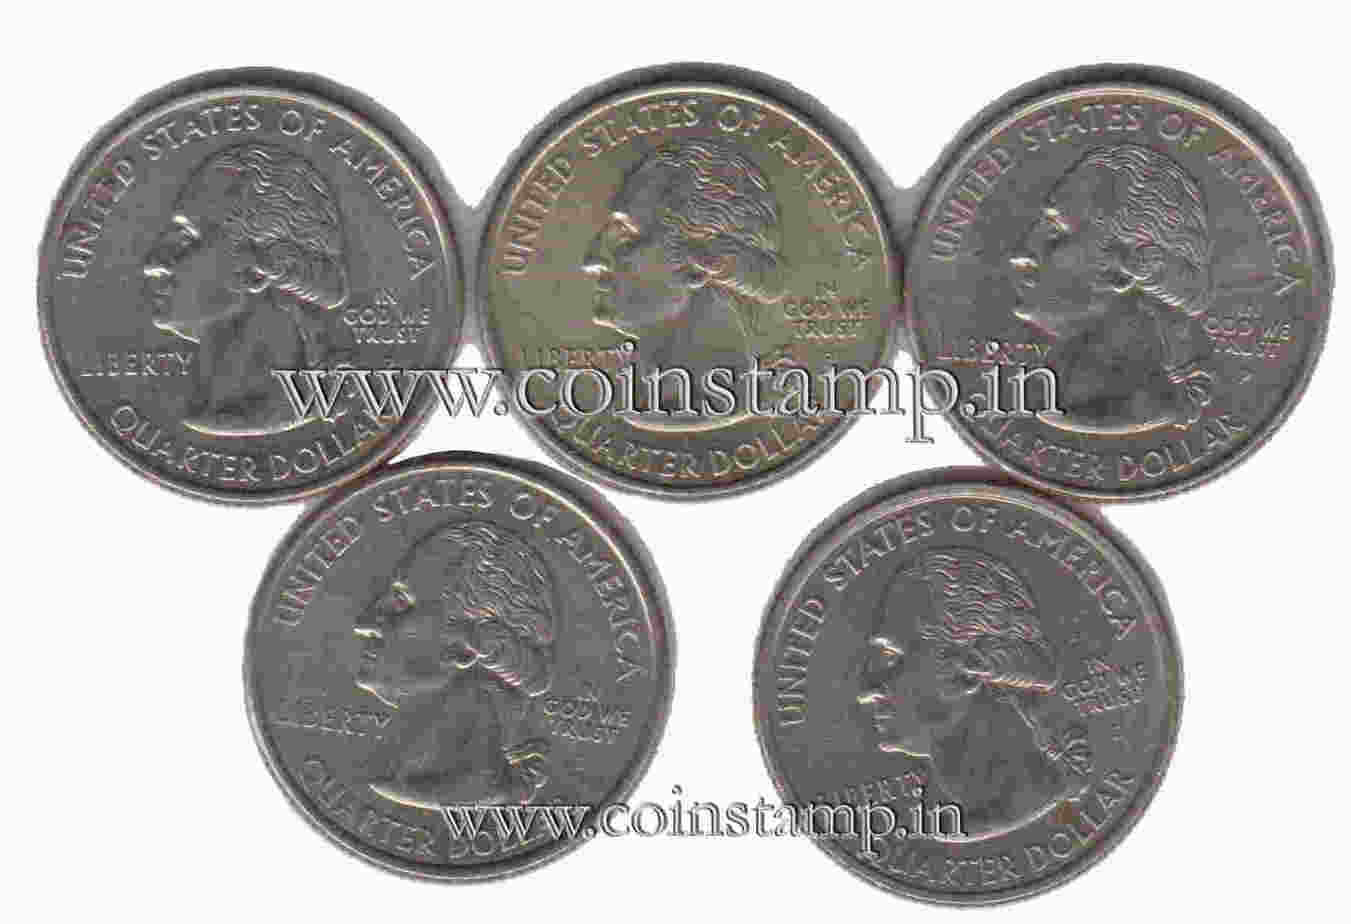 UGANDA NEW ISSUE BIMETAL 1000 SHILLINGS UNC COIN 2012 YEAR 50 ANNI INDEPENDENCE